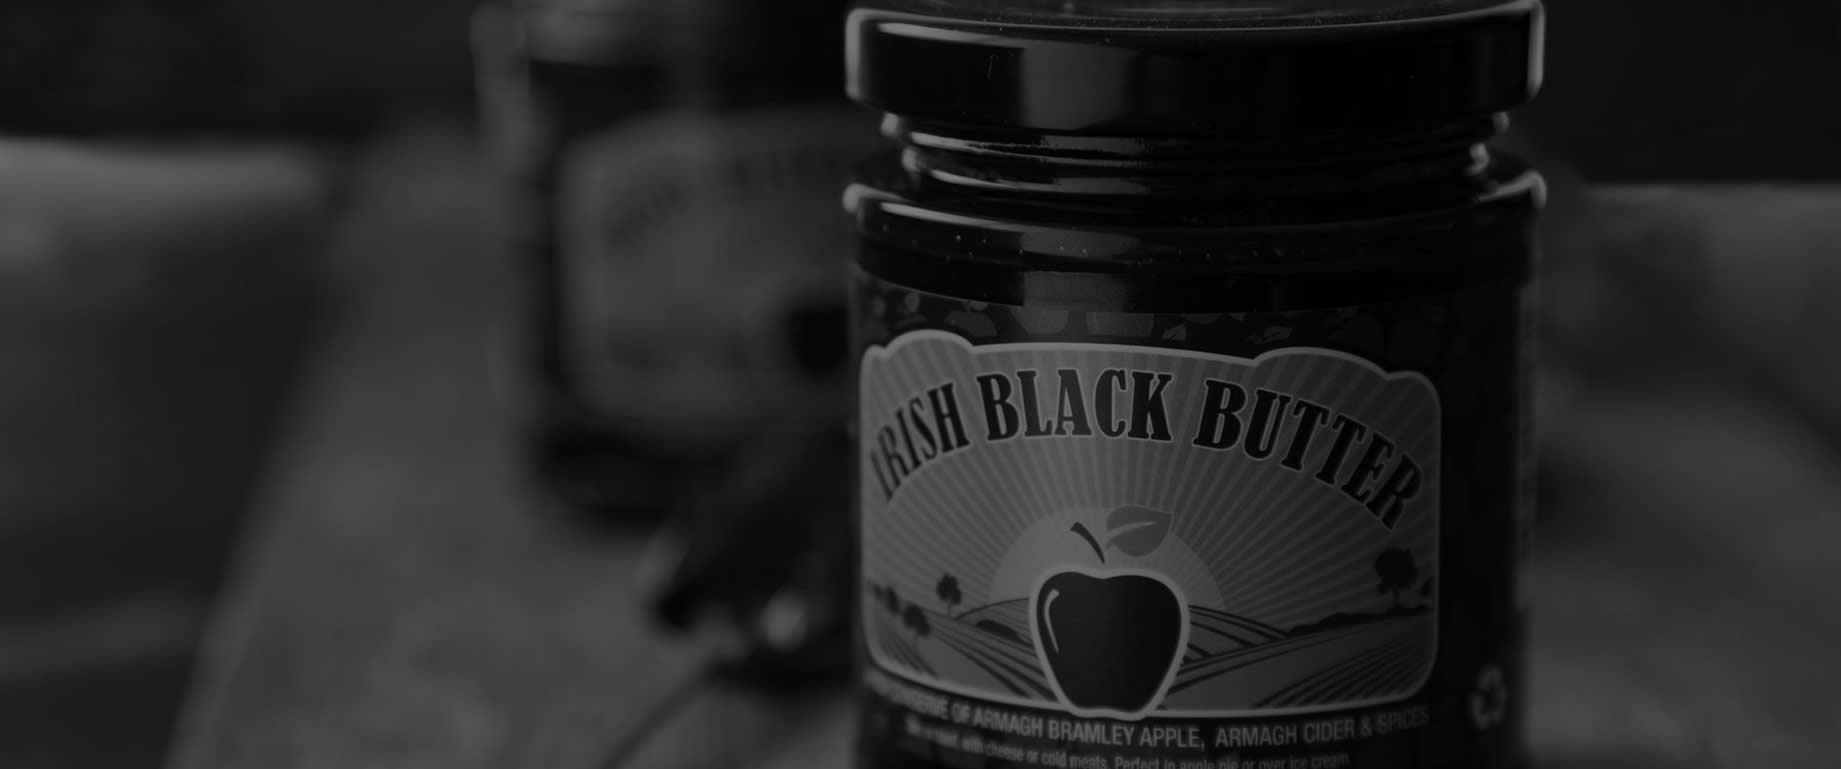 Jar of Irish Black Butter